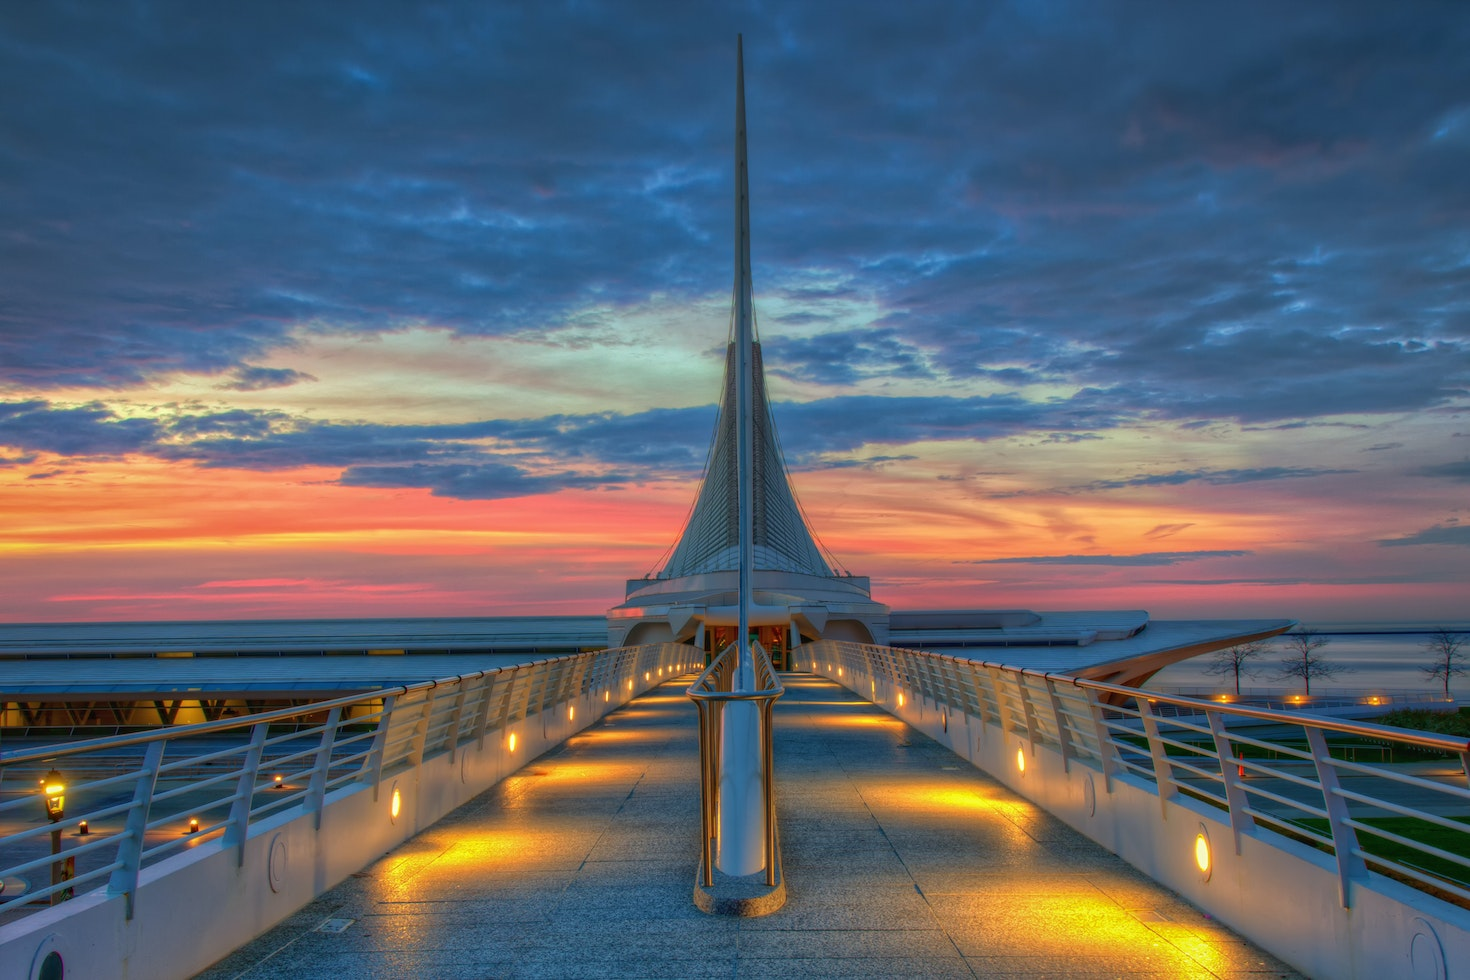 Exterior of the Milwaukee Art Museum which houses over 30,000 works of art © Abhishek Chandra / 500px